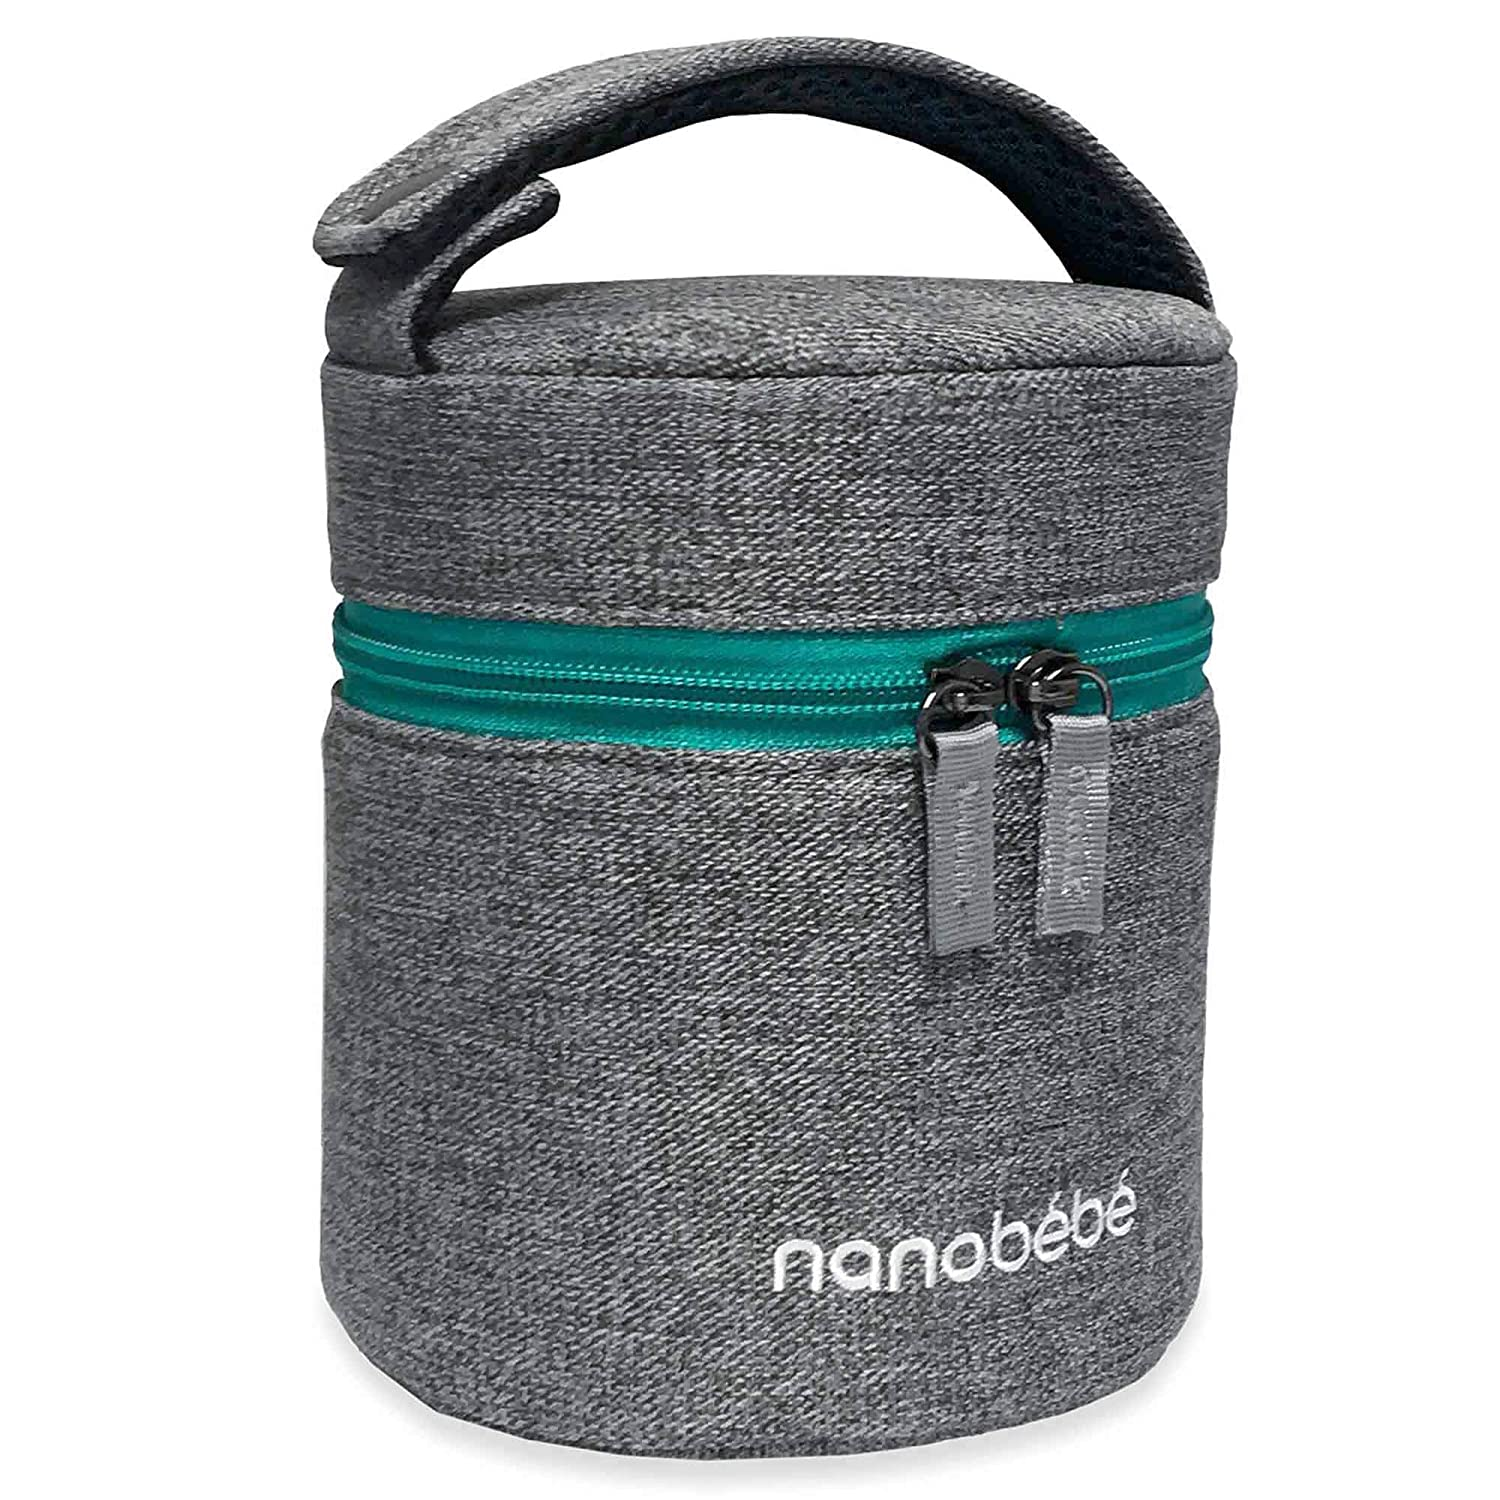 nanobebe Breastmilk Baby Bottle Cooler & Travel Bag with Ice Pack Included. Compact Triple Insulated, Easily attaches to Stroller or Diaper Bag